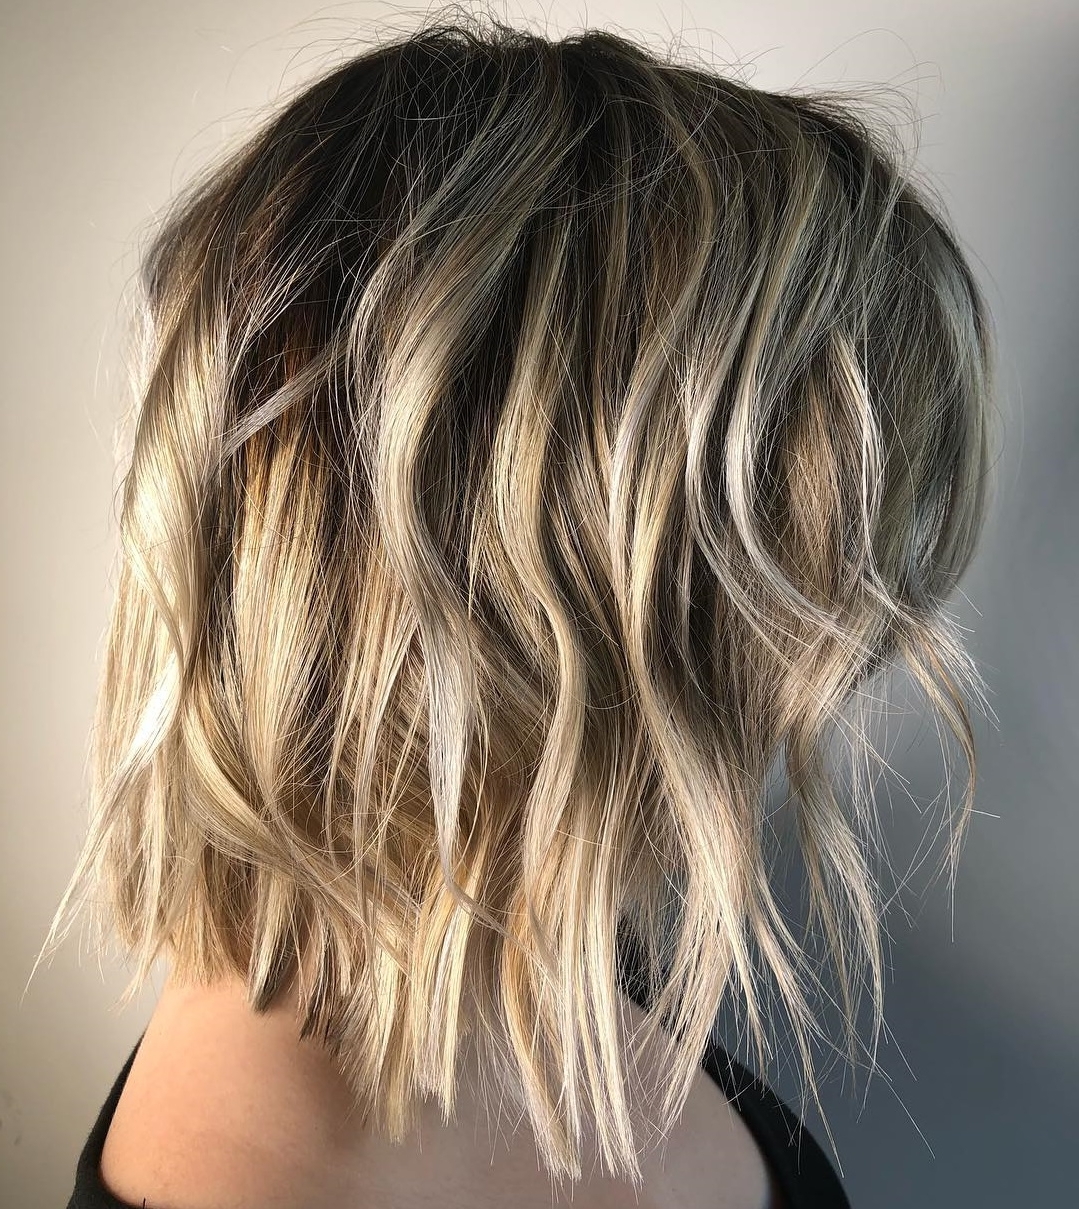 Fashionable Disconnected Brown Shag Long Hairstyles With Highlights Intended For Must Try Medium Length Layered Haircuts For (View 10 of 20)